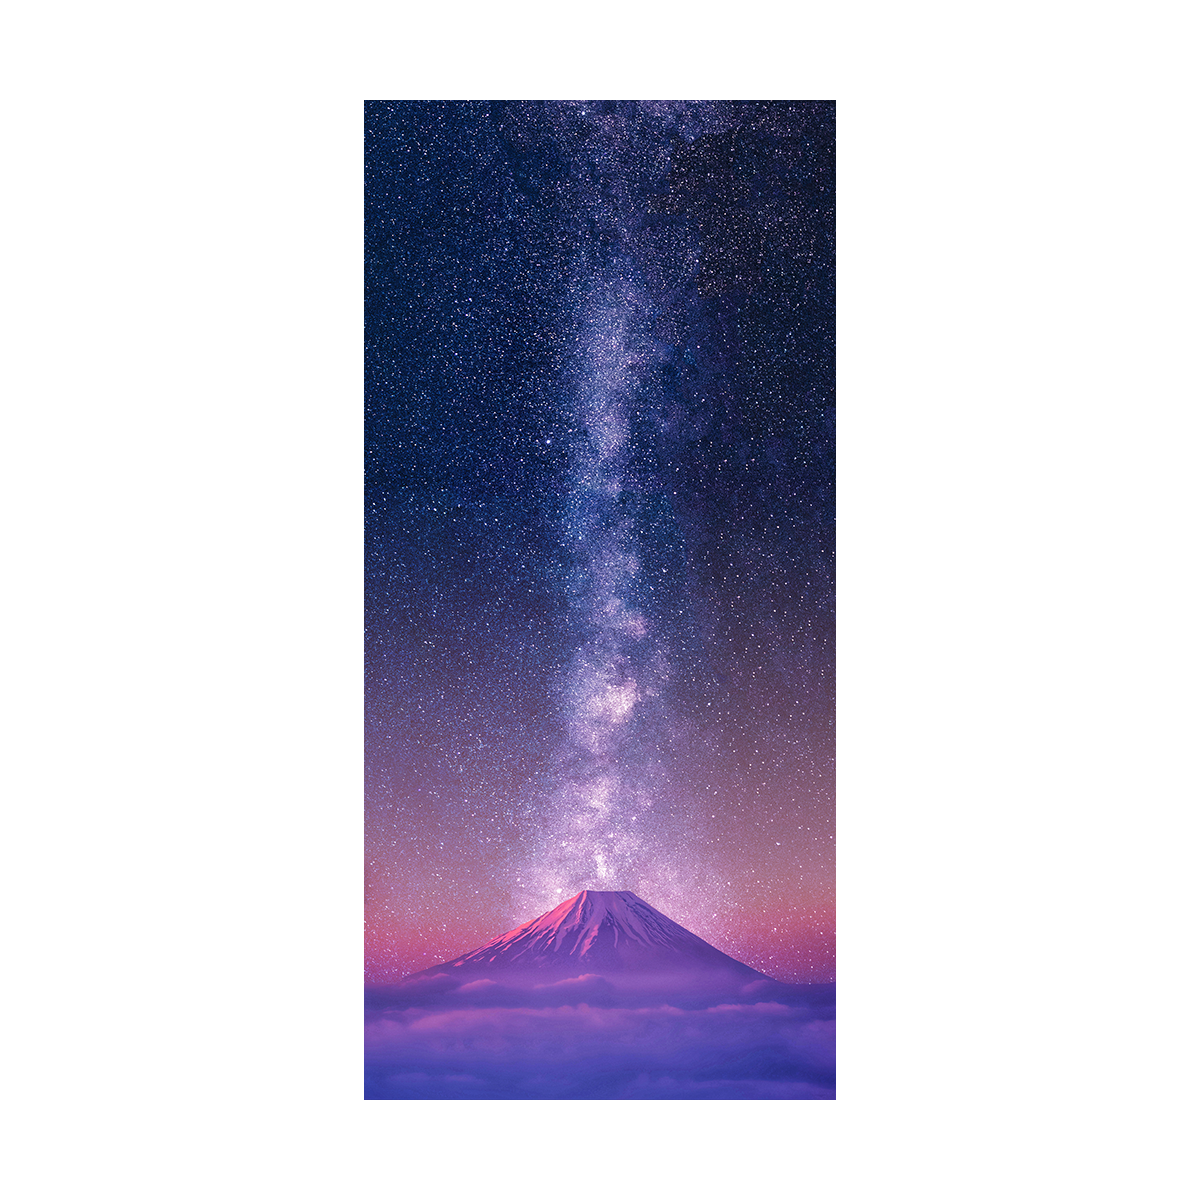 A photorealistic drawing of Mt. Fuji lined up with a vertical Milky Way down the middle in the background